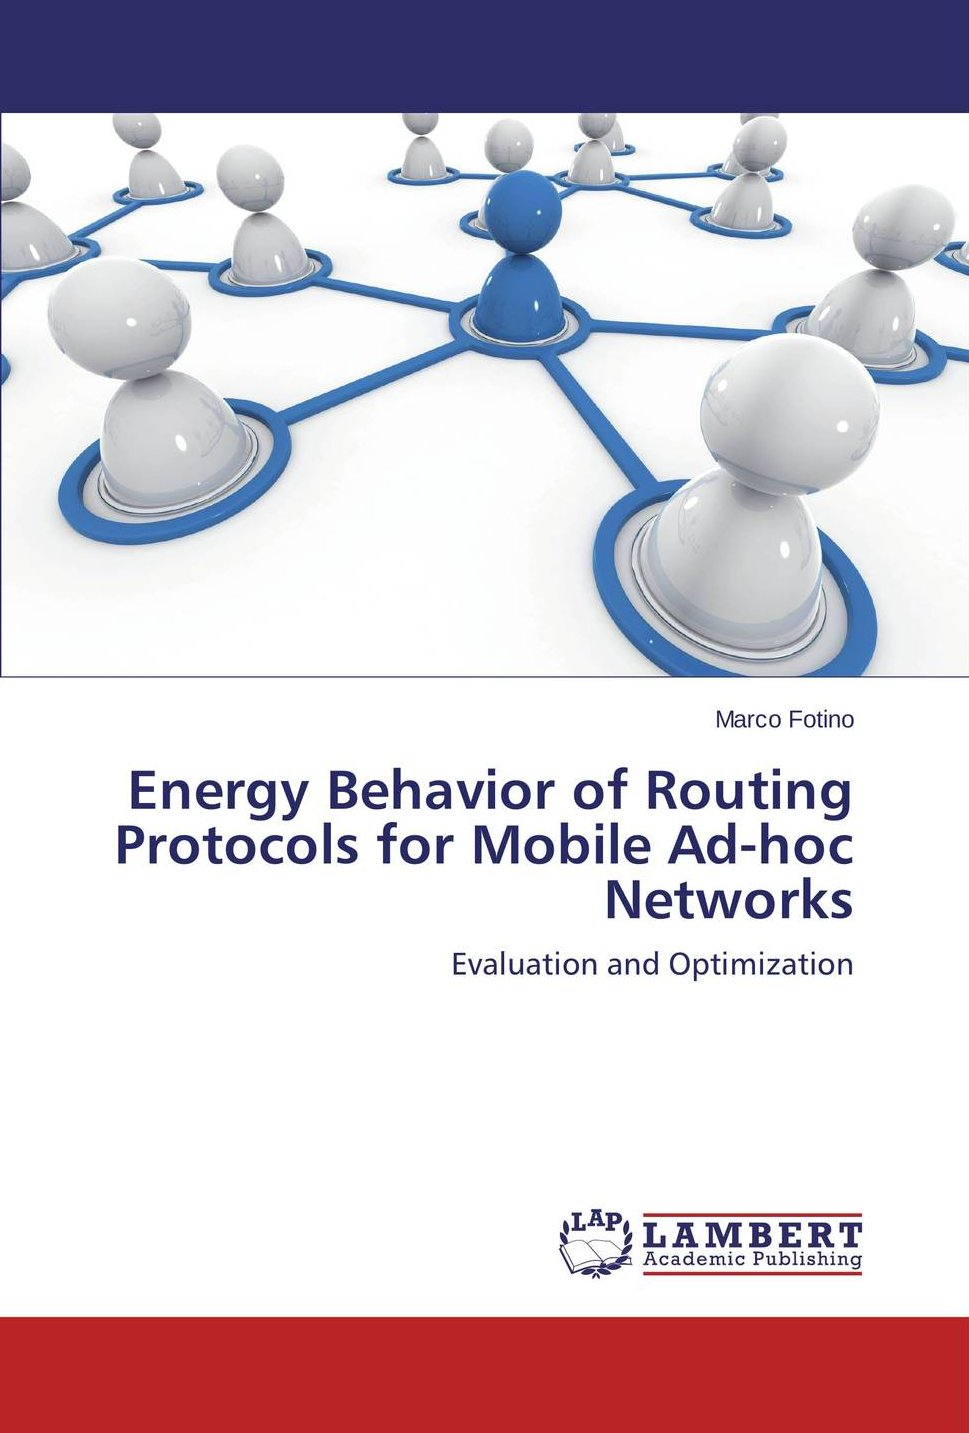 Energy Behavior of Routing Protocols for Mobile Ad-hoc Networks